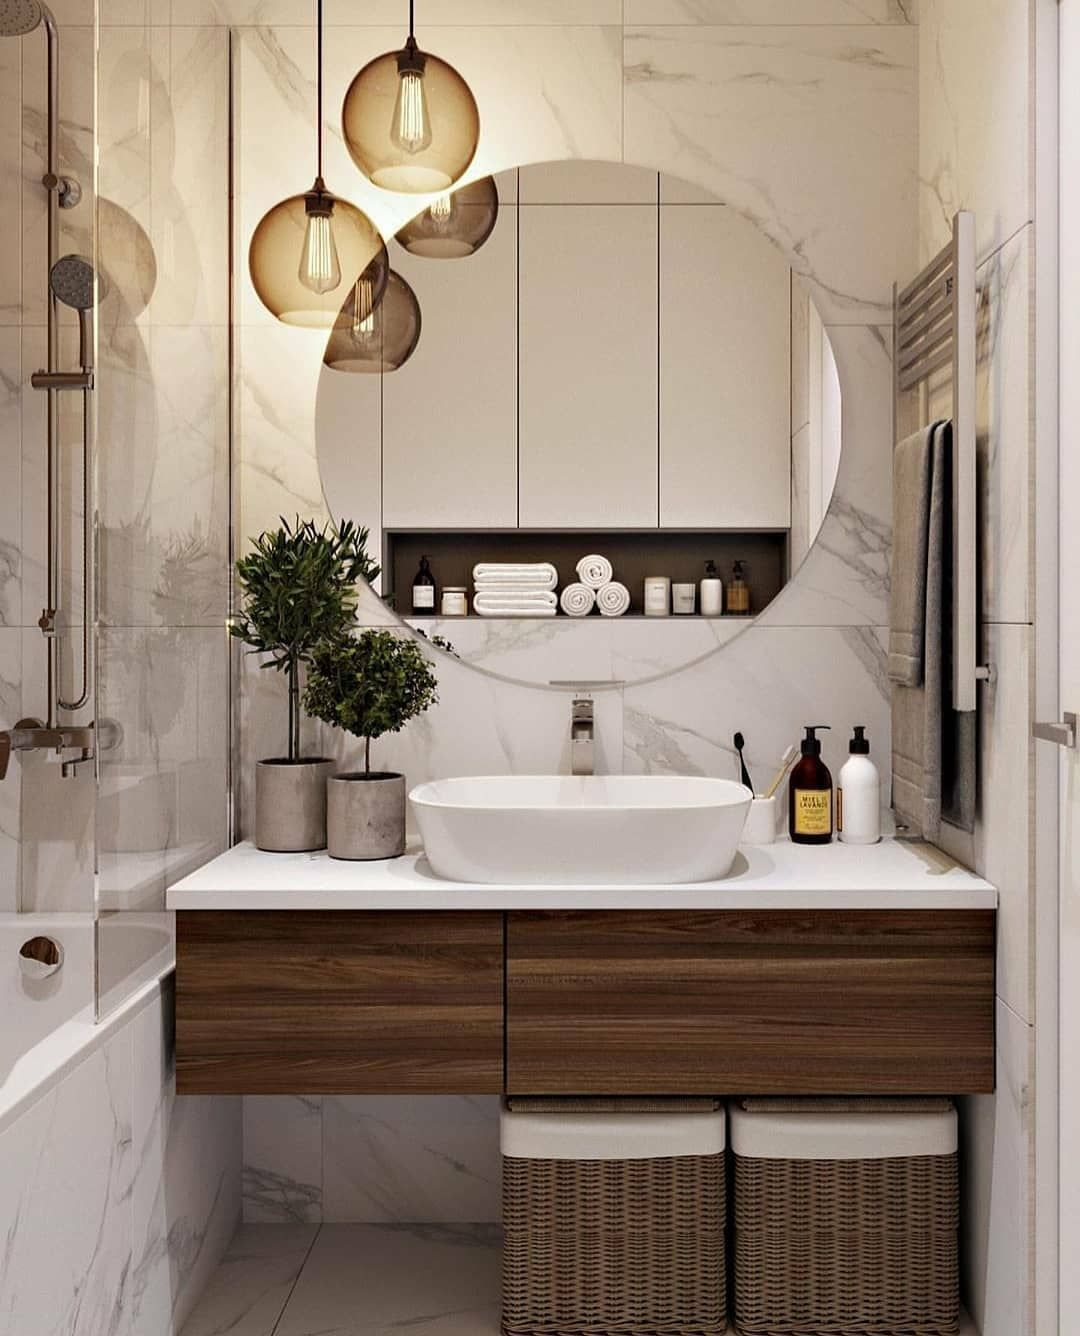 "B E A U T I F U L R O O M S Z on Instagram: ""Inspiration!!! ������� Follow @beautifulroomsz for more ! � @homeasy.bathroom . . . . . . #lovefordesigns #homedesign #interiordecor…"""